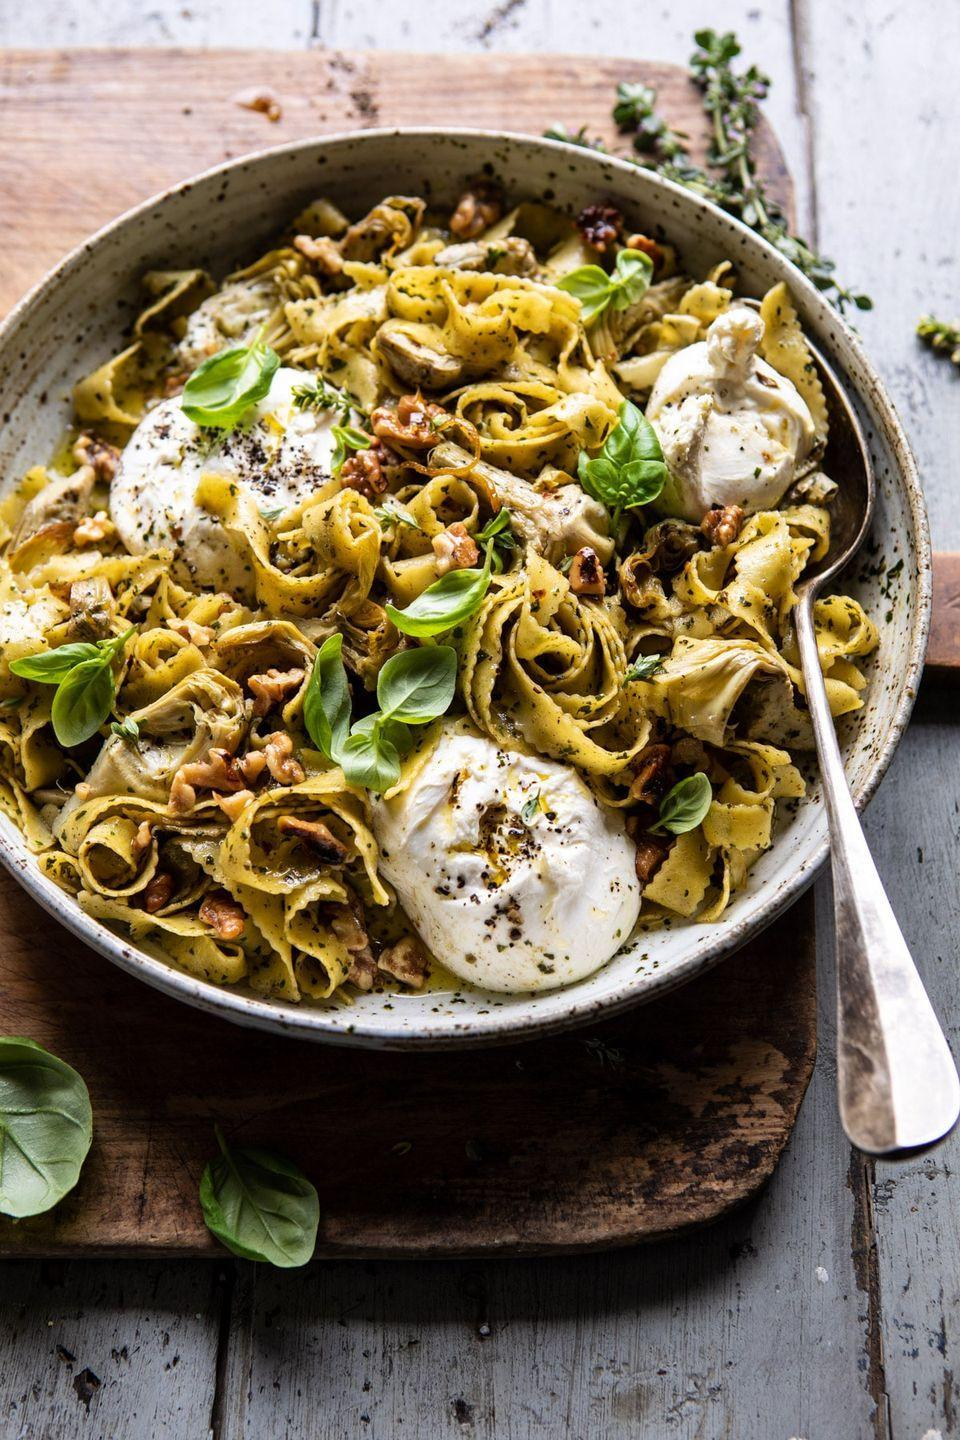 """<p>Adding the big scoops of burrata onto this tangy, nutty pasta dish might be our favorite part of making it.</p><p><strong>Get the recipe at <a href=""""https://www.halfbakedharvest.com/roasted-lemon-artichoke-and-browned-butter-pasta/"""" rel=""""nofollow noopener"""" target=""""_blank"""" data-ylk=""""slk:Half Baked Harvest"""" class=""""link rapid-noclick-resp"""">Half Baked Harvest</a>.</strong></p><p><strong><strong><a class=""""link rapid-noclick-resp"""" href=""""https://www.amazon.com/Stainless-Steel-Skillet-Glass-Cover/dp/B01D0MDZRO/ref=sr_1_5?tag=syn-yahoo-20&ascsubtag=%5Bartid%7C10050.g.1487%5Bsrc%7Cyahoo-us"""" rel=""""nofollow noopener"""" target=""""_blank"""" data-ylk=""""slk:SHOP SKILLETS"""">SHOP SKILLETS</a></strong><br></strong></p>"""